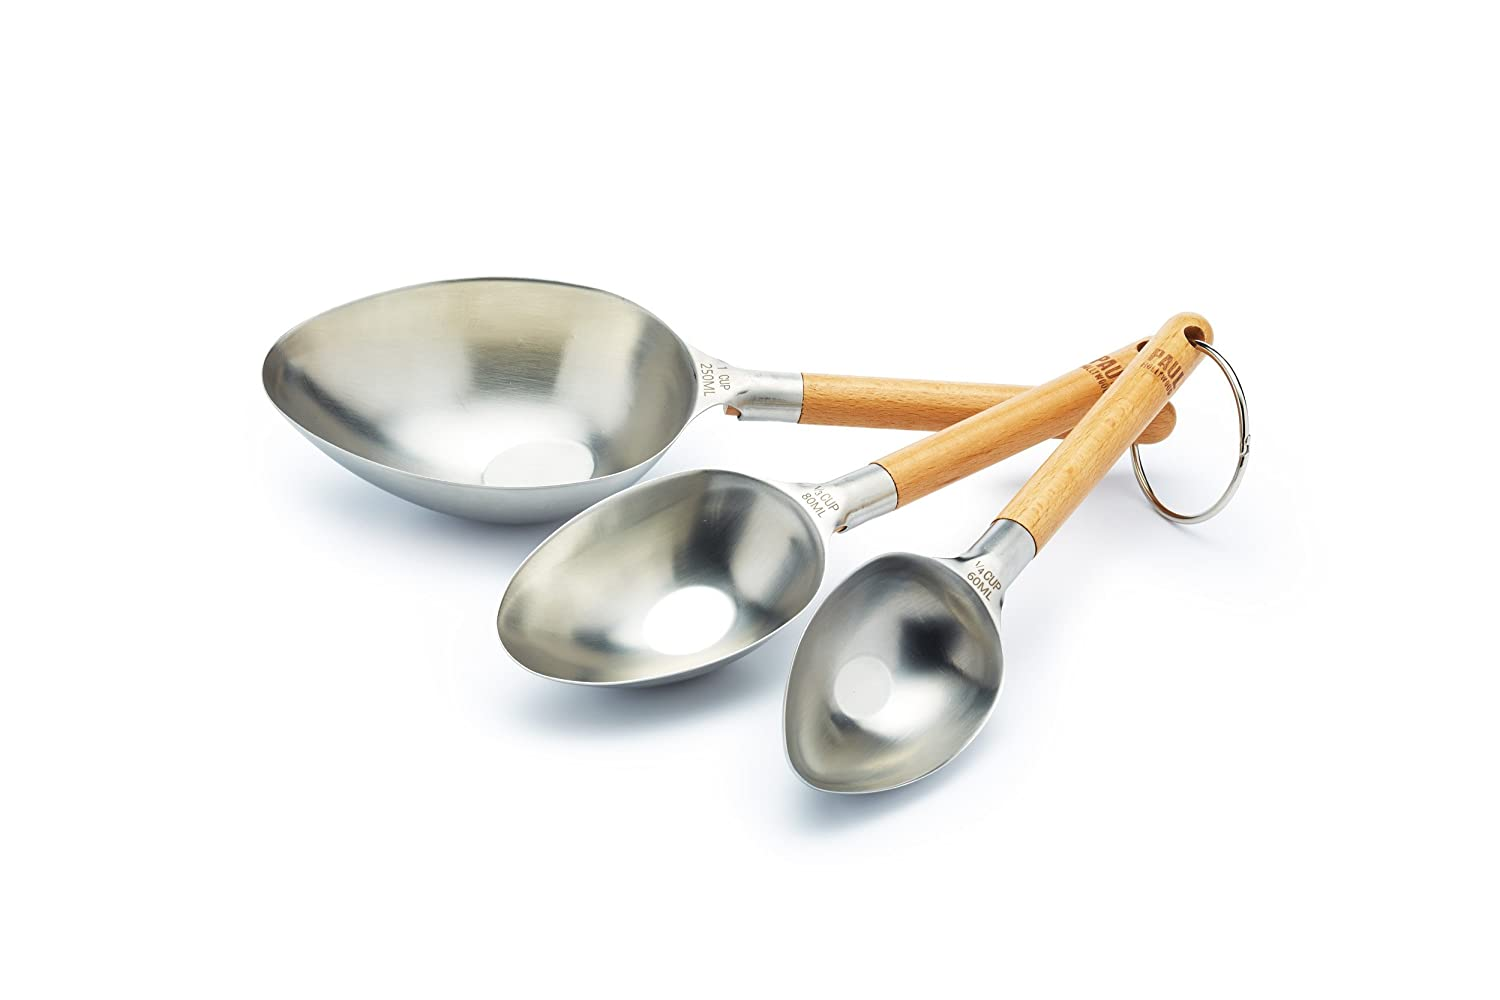 KitchenCraft Paul Hollywood Stainless Steel Measuring Cups (Set of 3) Kitchen Craft PHMCUPS